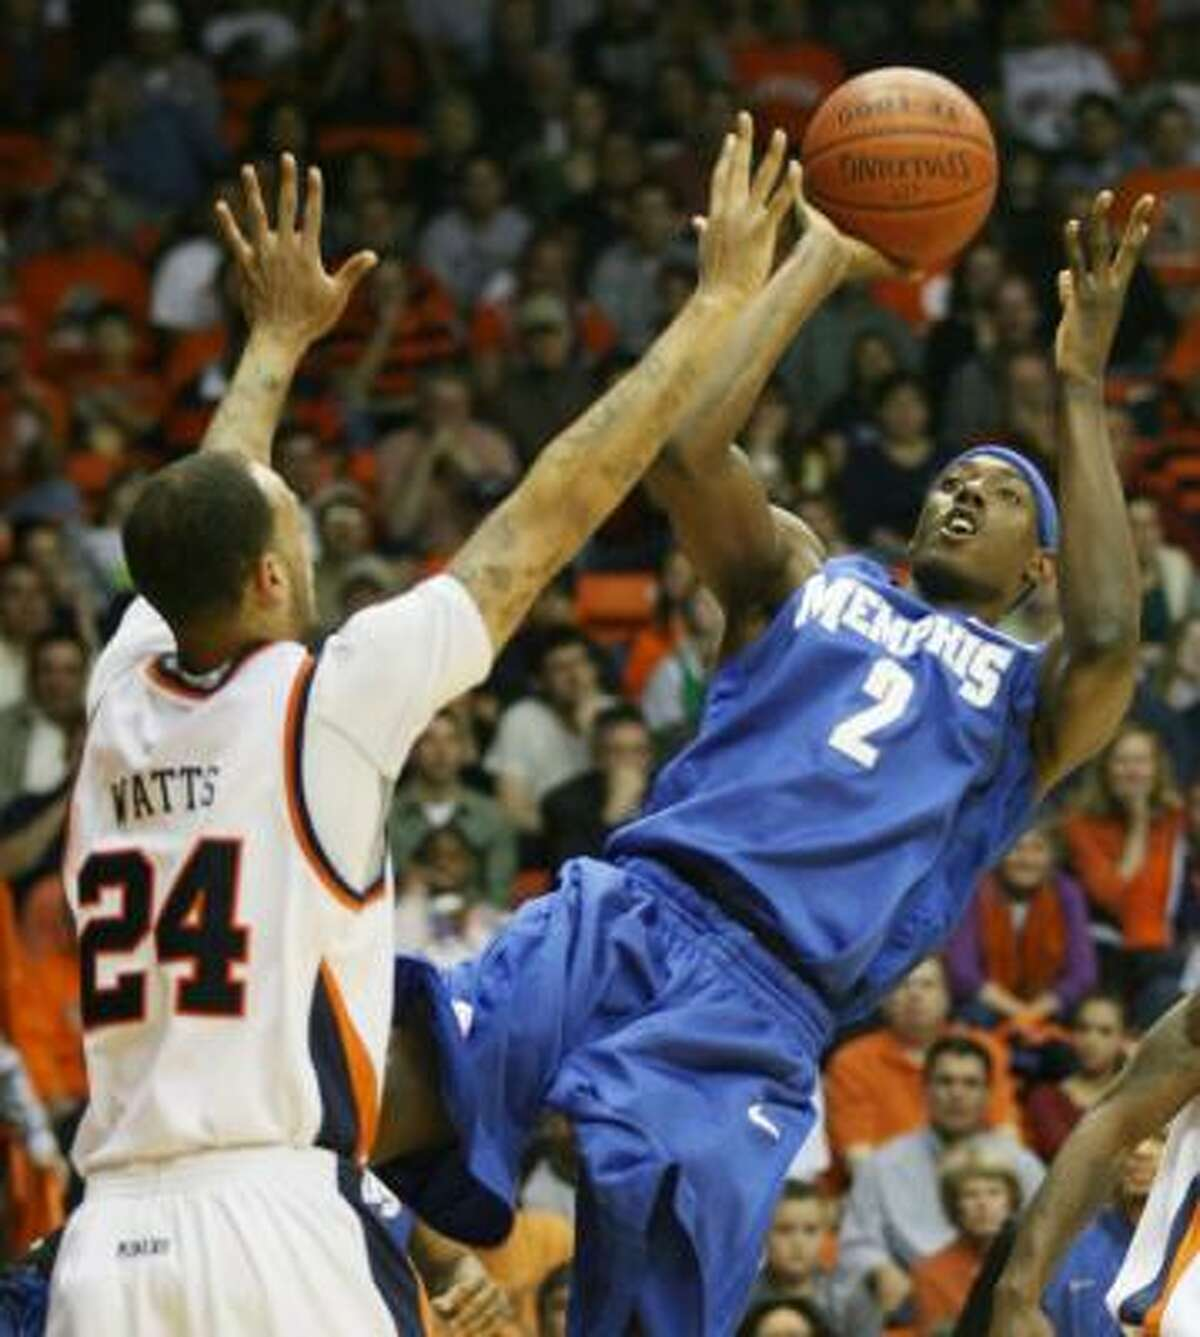 Memphis (28-3): The fourth-ranked Tigers are the hottest team in the nation with a 22-game winning streak and have won the last three C-USA tournaments. Guard Tyreke Evans leads the team in scoring with 16.9 points and forward Robert Dozier (photo) is averaging 12.9 points and 6.9 rebounds. The Tigers could be in line for a No. 1 seed in the NCAA Tournament.